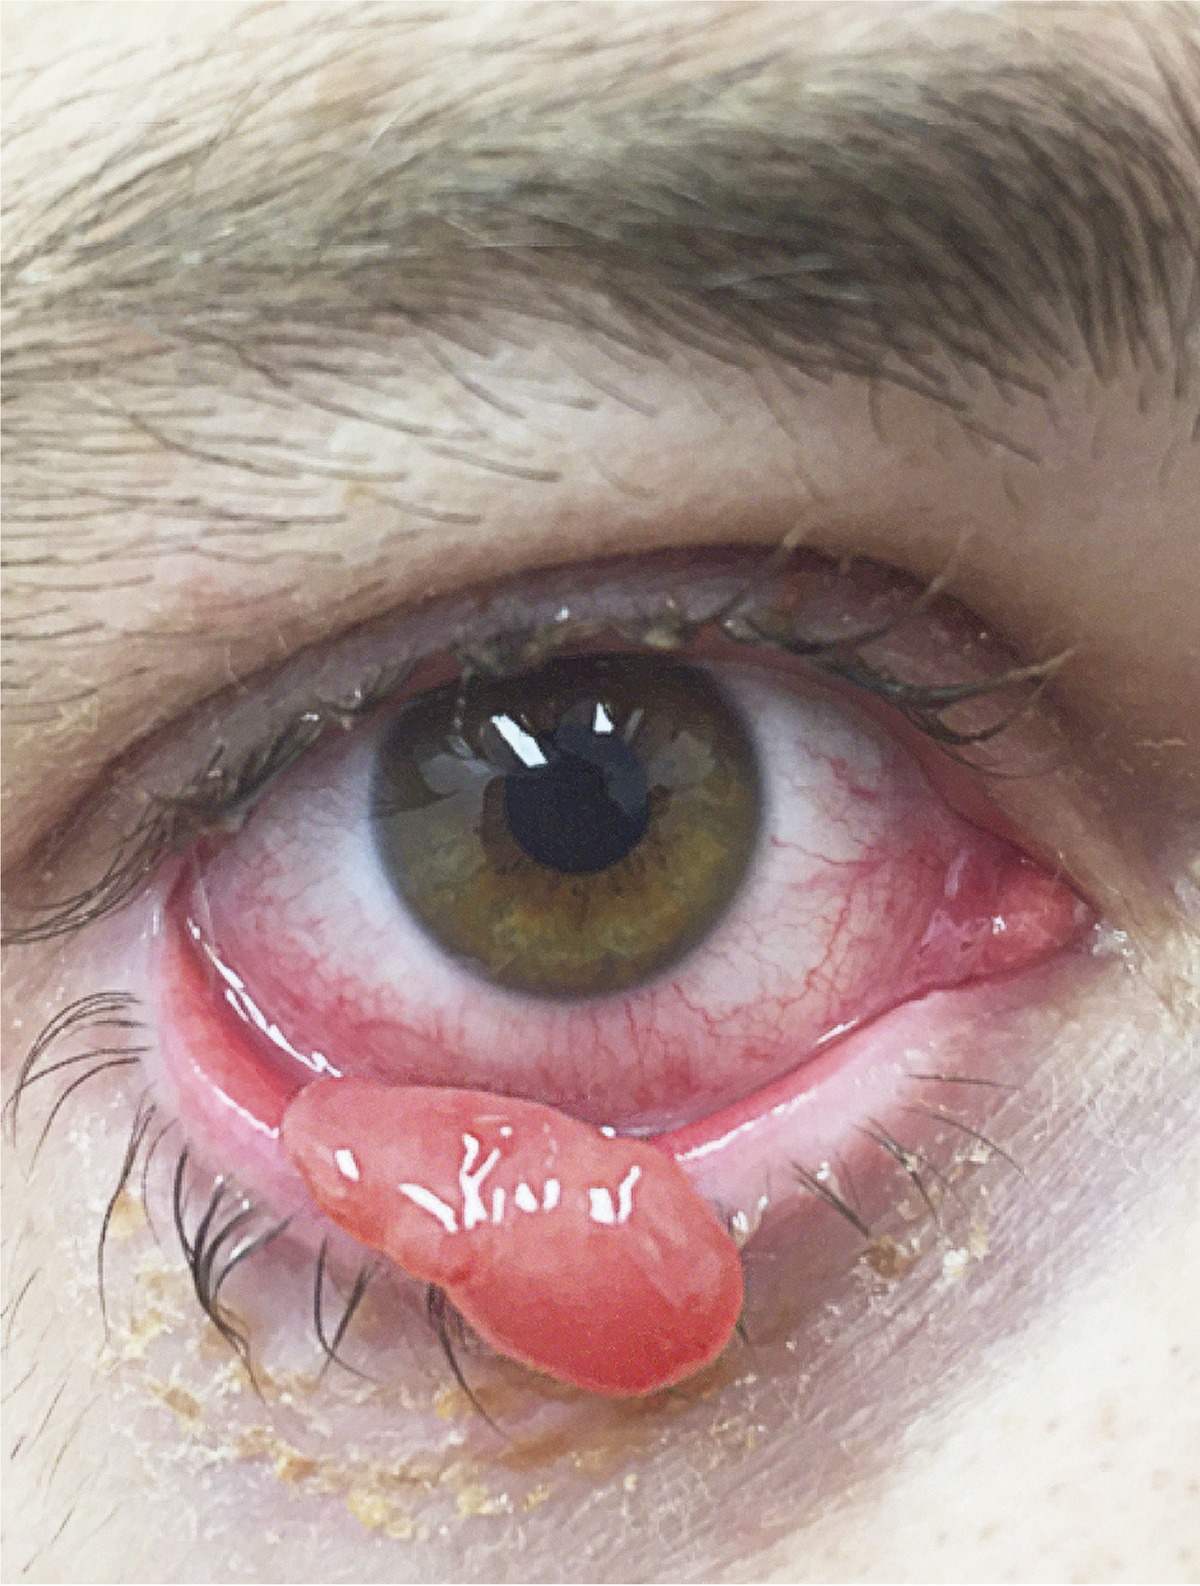 excision papilloma eyelid cpt